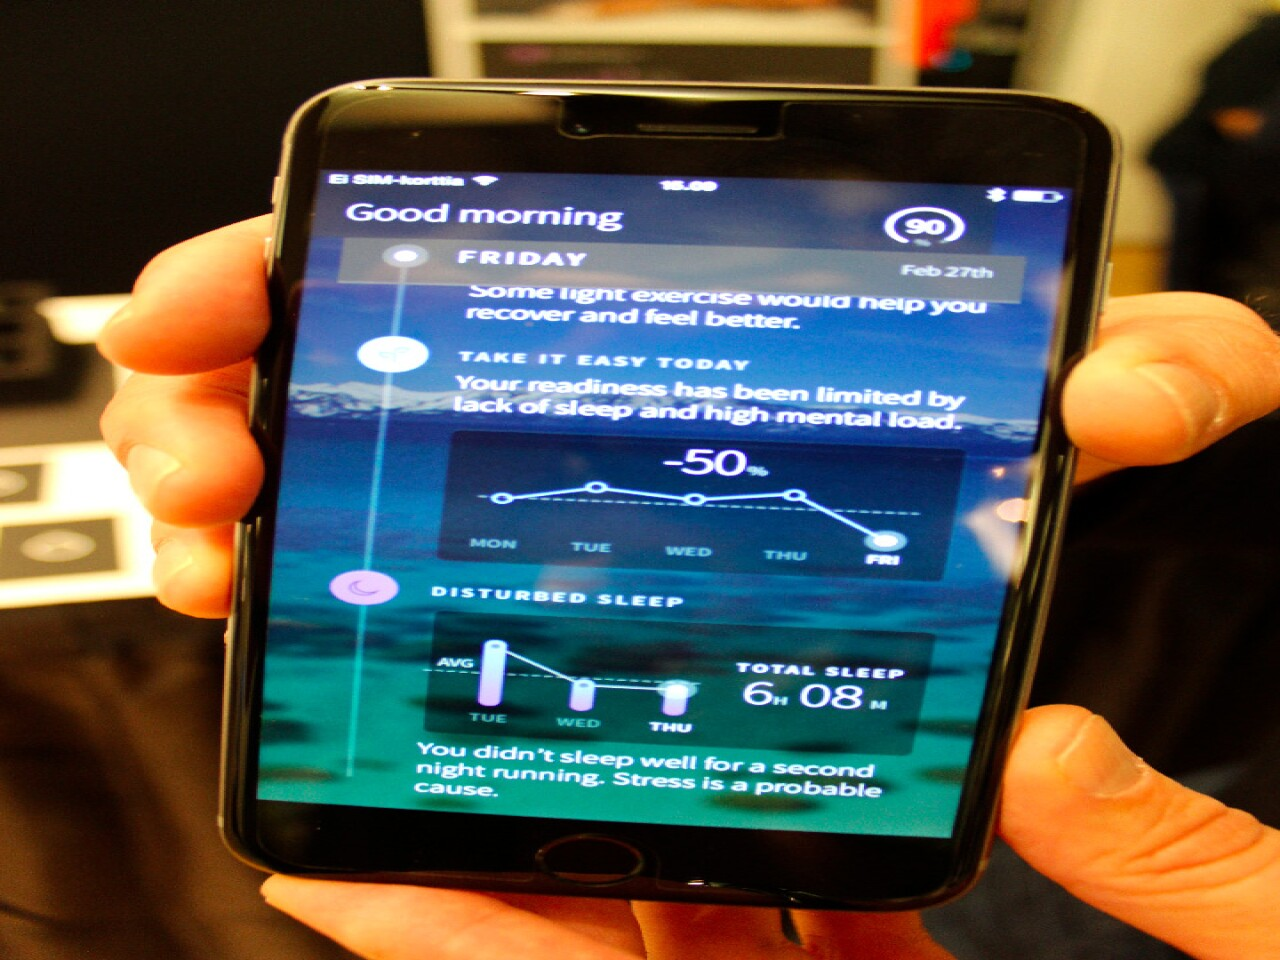 The Ōura ring app provides readouts and advice